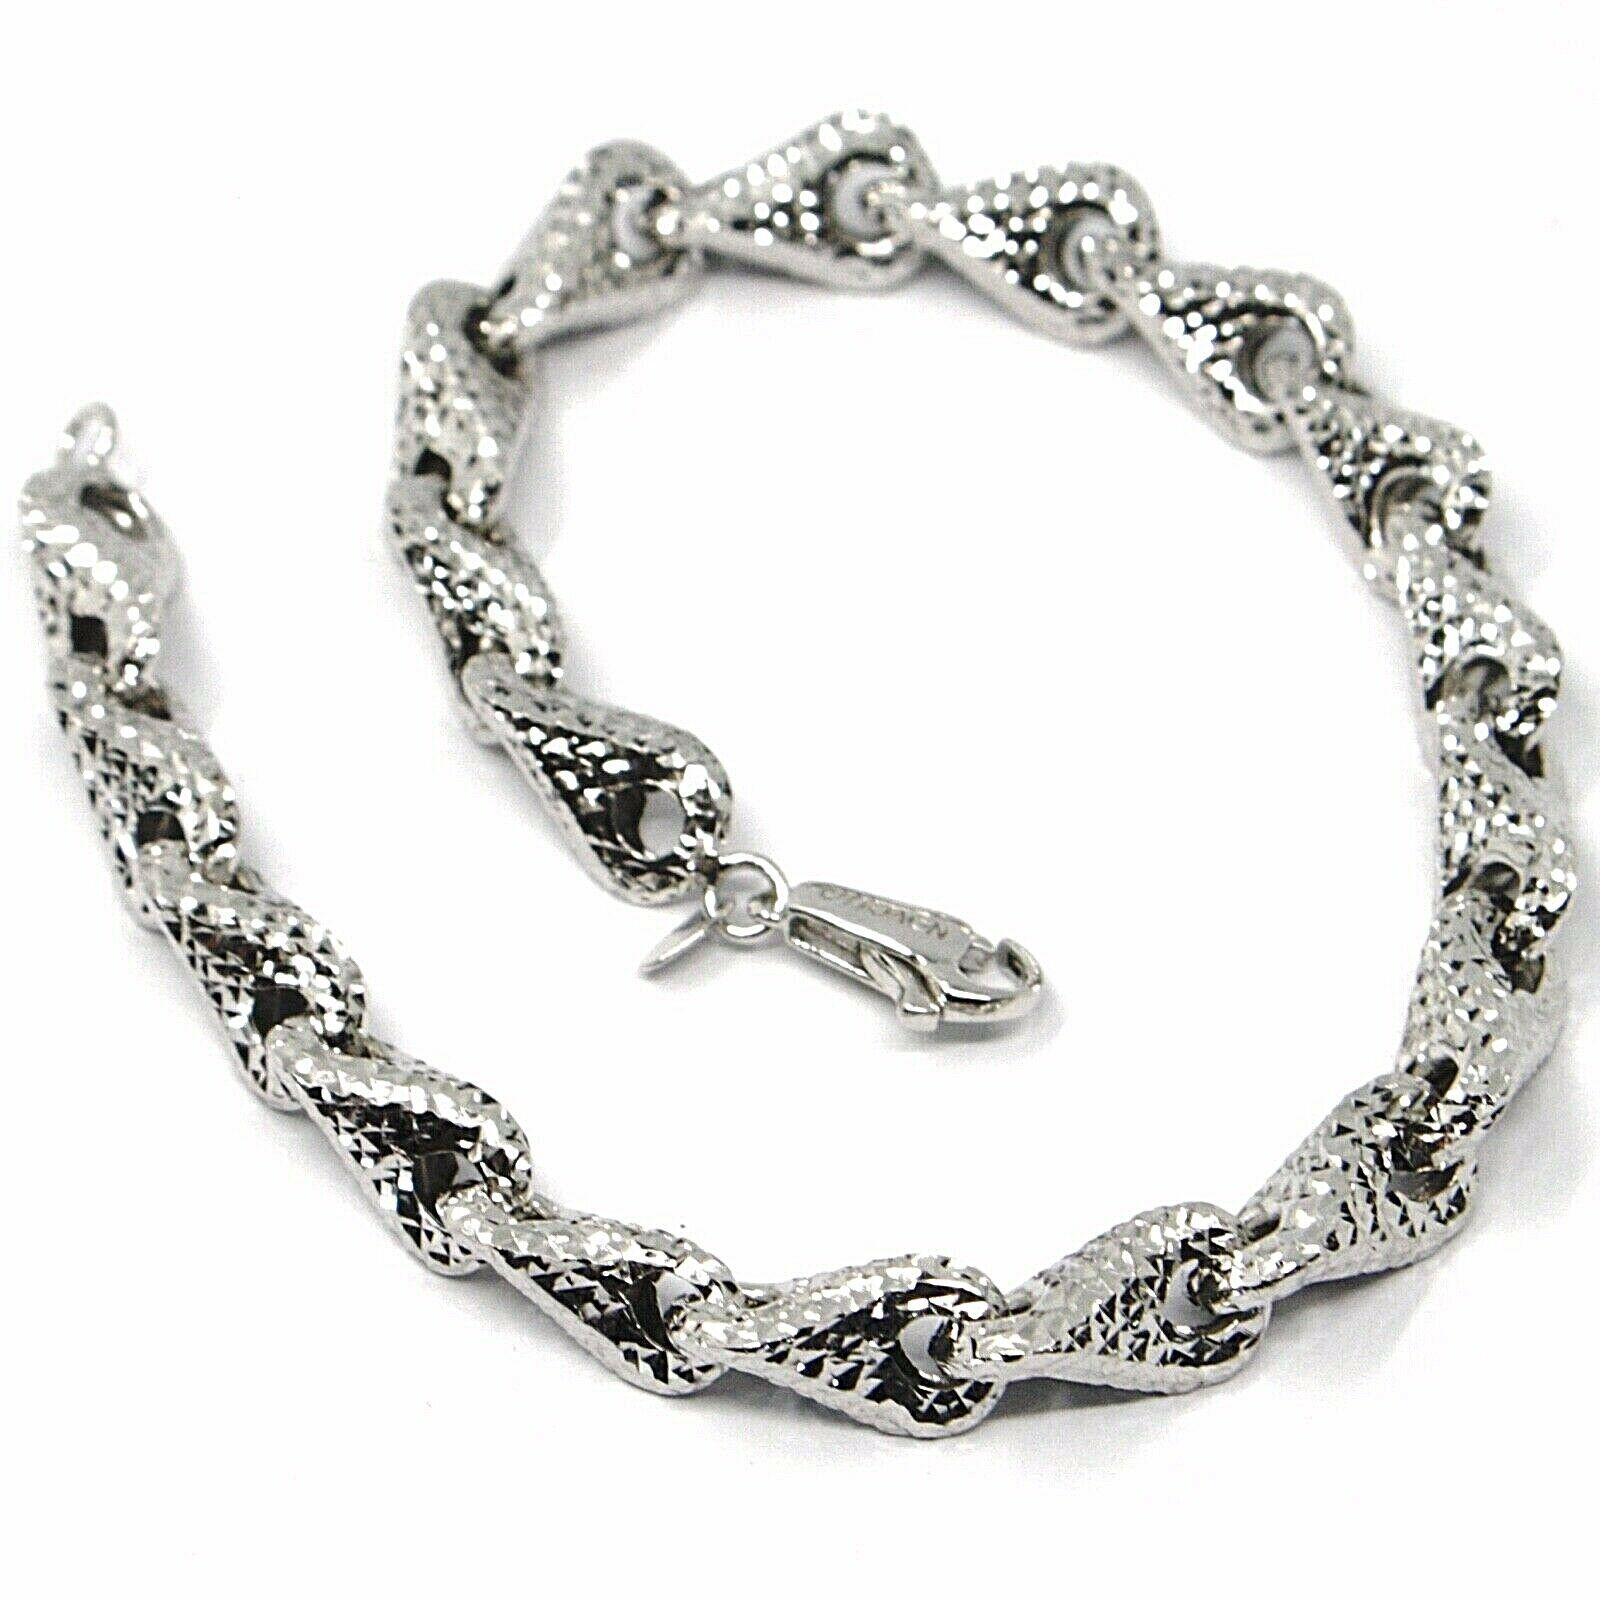 18K WHITE GOLD BRACELET, BIG ROUNDED DIAMOND CUT INFINITY ALTERNATE DROPS 7 MM